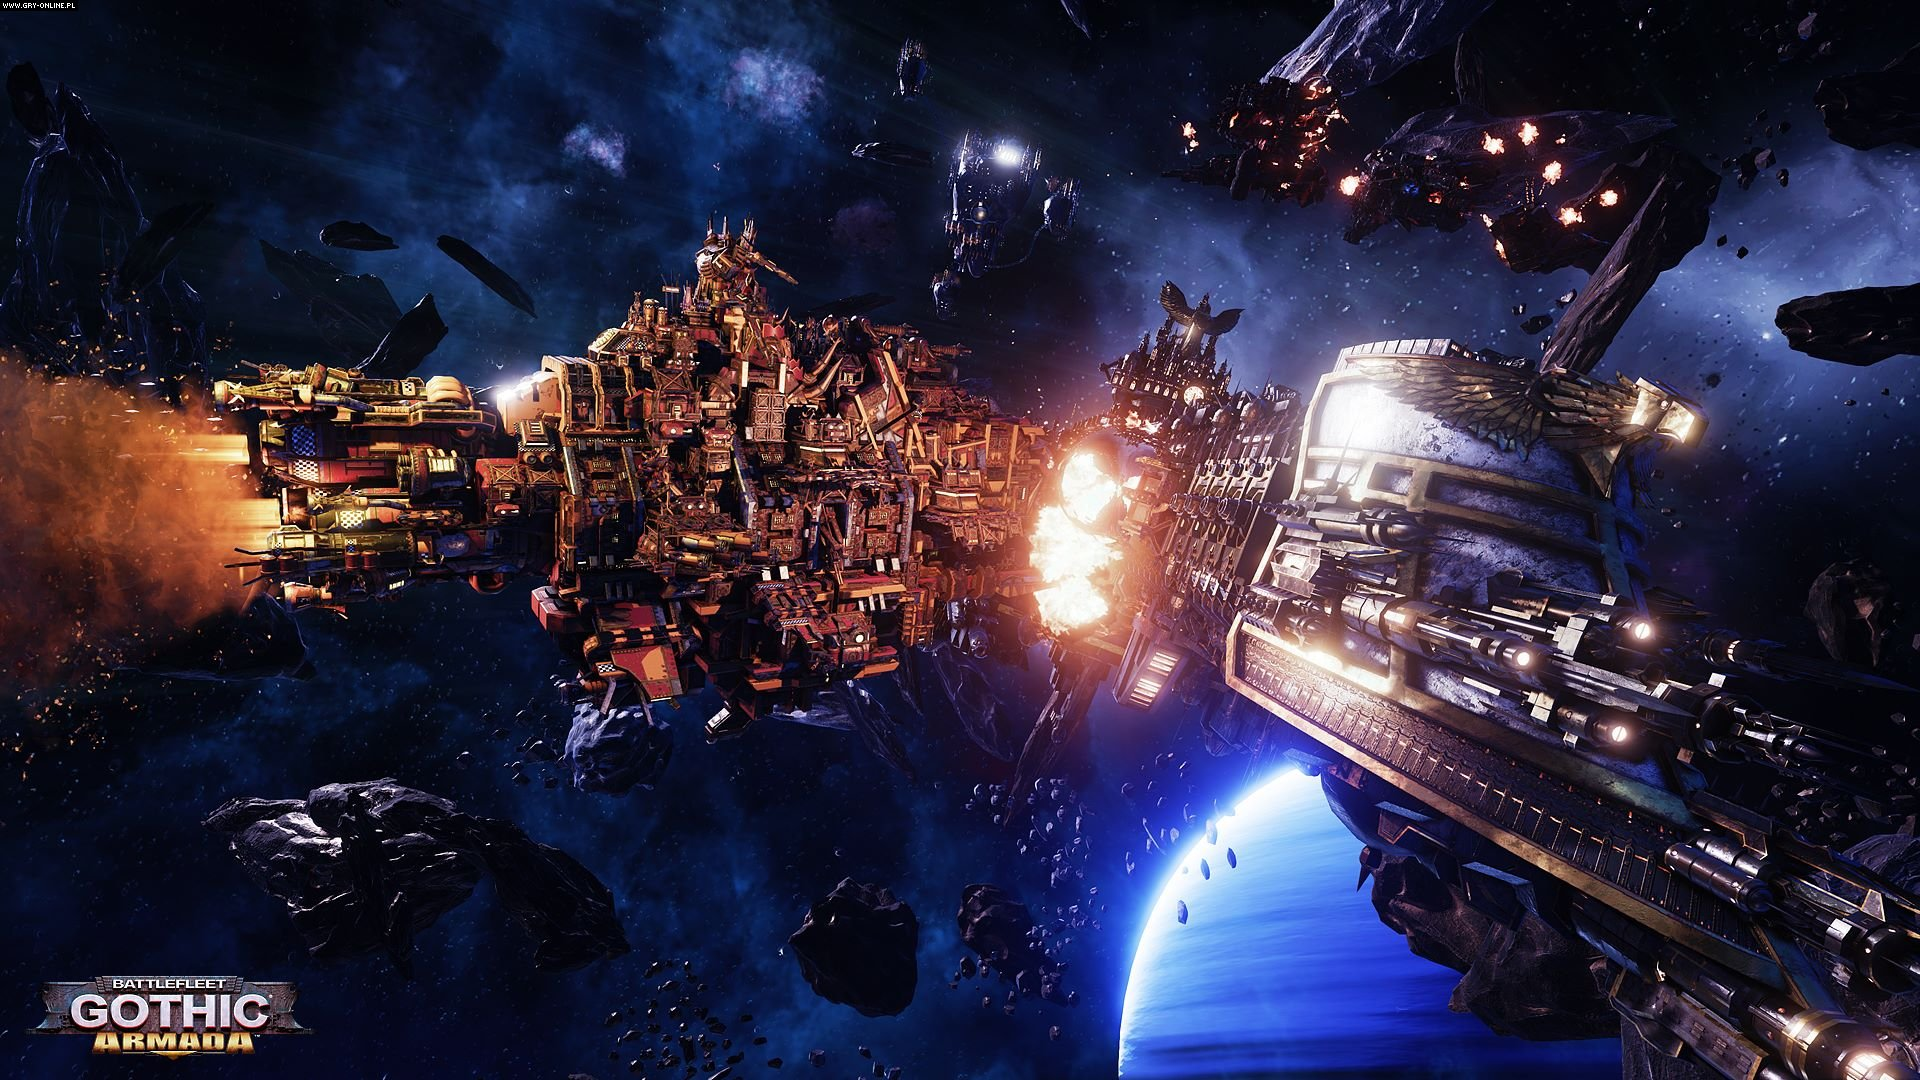 Battlefleet Gothic: Armada PC Gry Screen 13/21, Tindalos Interactive, Focus Home Interactive